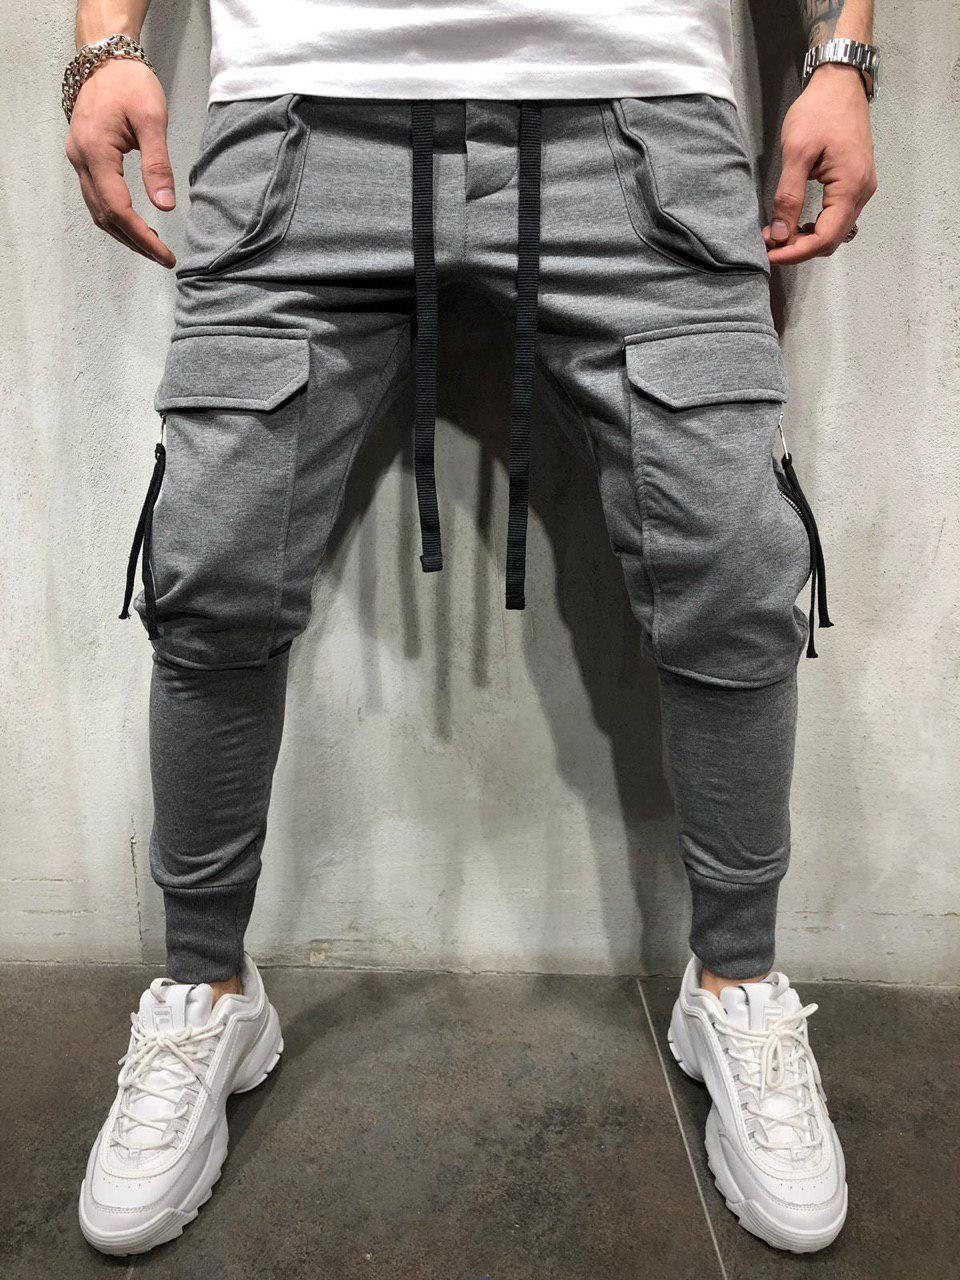 Harem pants Men Europe and America Leisure Multi-pocket Fitness Beam port Pants fashion zipper Patch pocket Slim fit Sweatpants new style